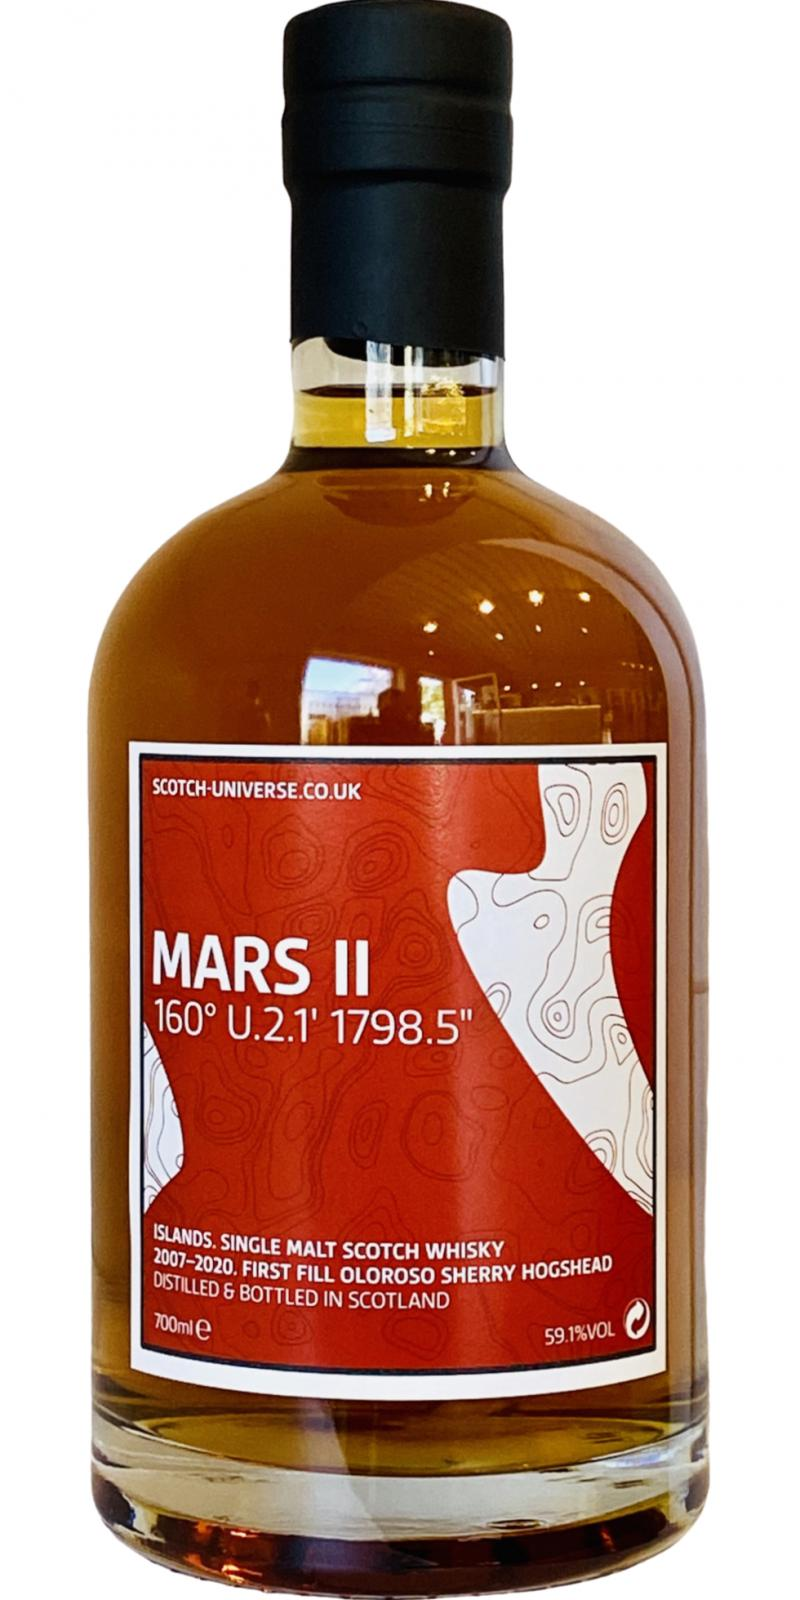 Scotch Universe Mars II - 160° U.2.1' 1798.5""